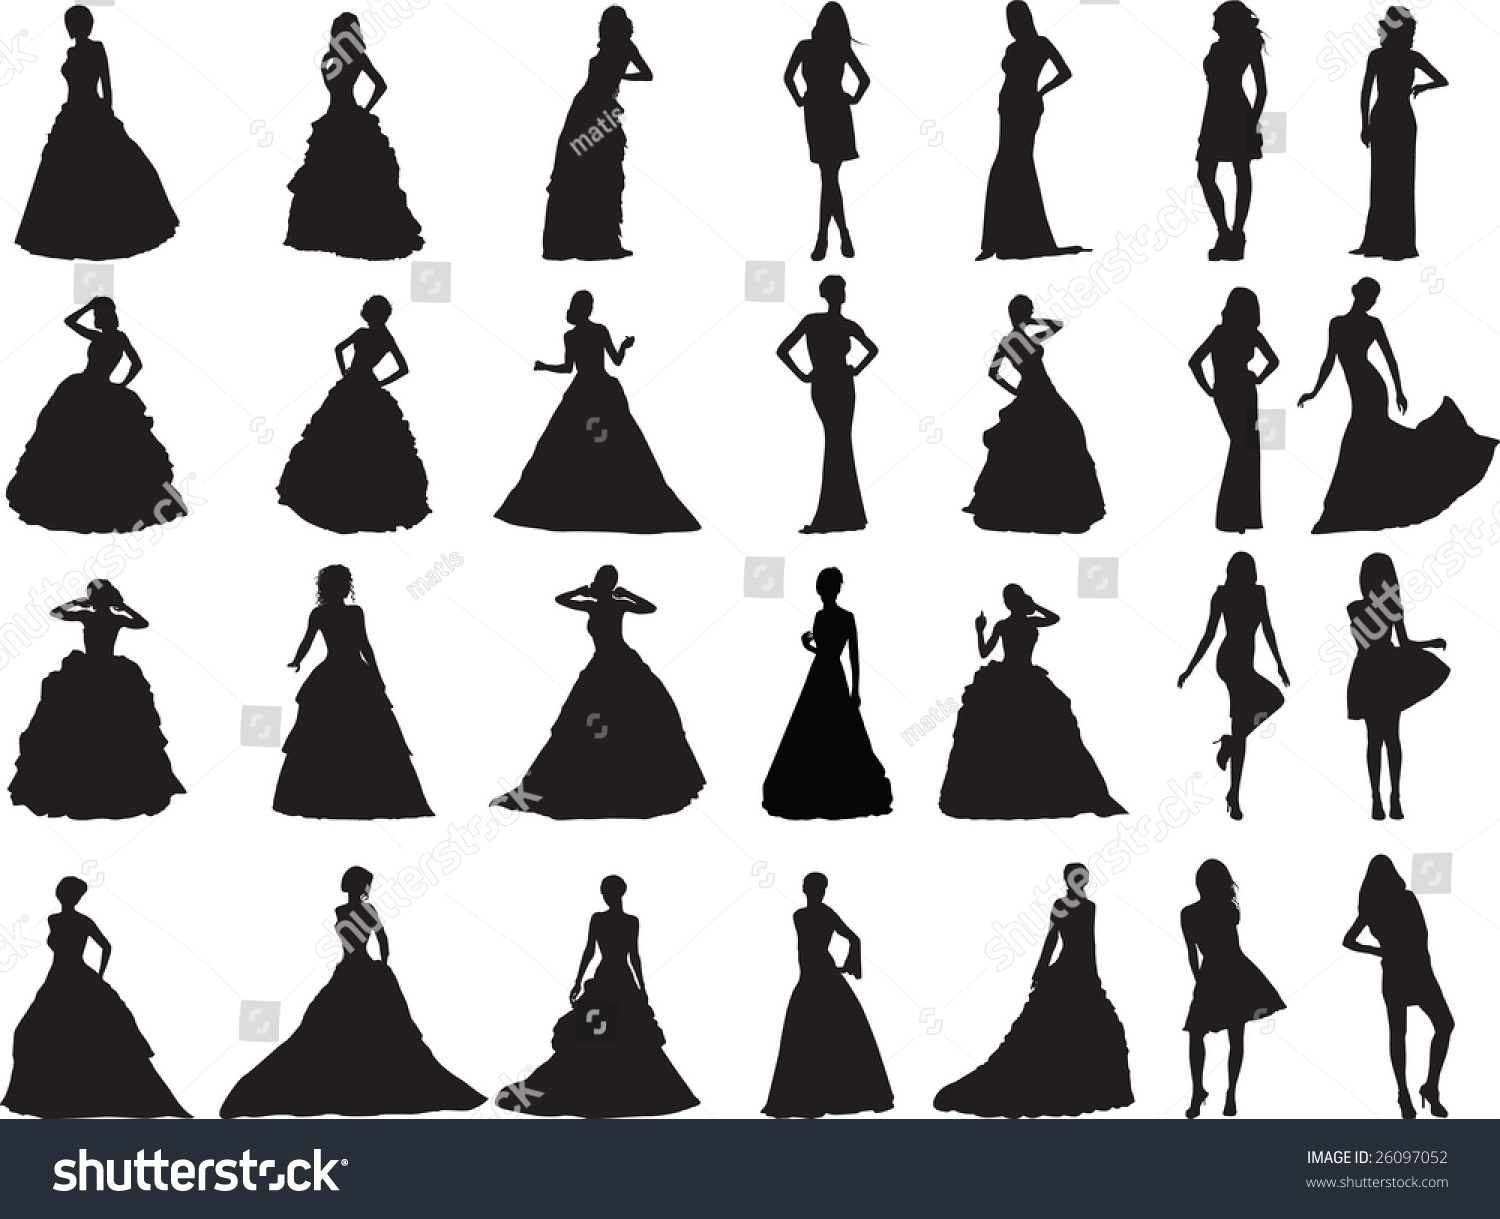 Silhouettes Girls Weddings Ball Clothes Stock Vector (Royalty Free ...